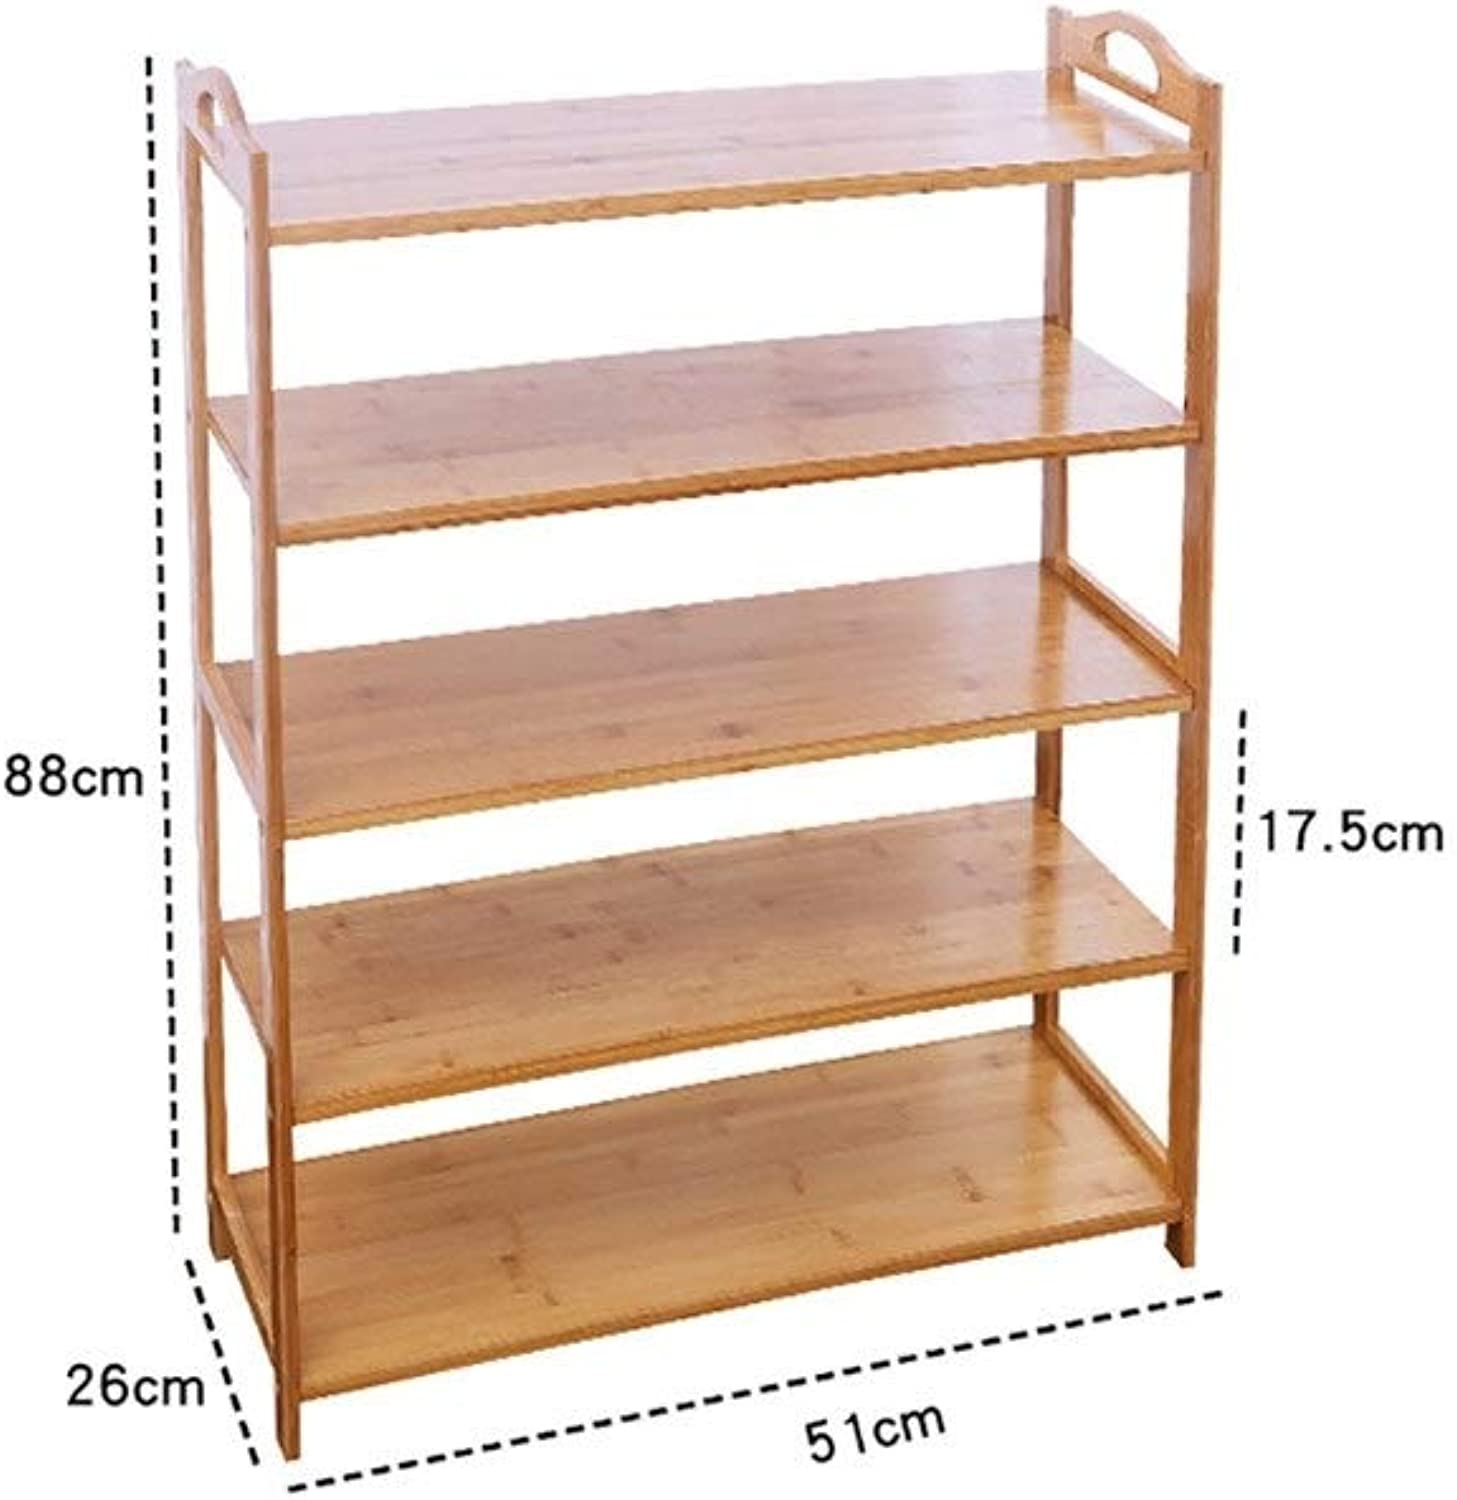 shoes Rack Organizer Storage, Multi-Layer Simple Solid Wood shoes, shoes Bench, Bamboo Storage Rack, dust-Proof shoes Rack. (Size   51  26  88CM)